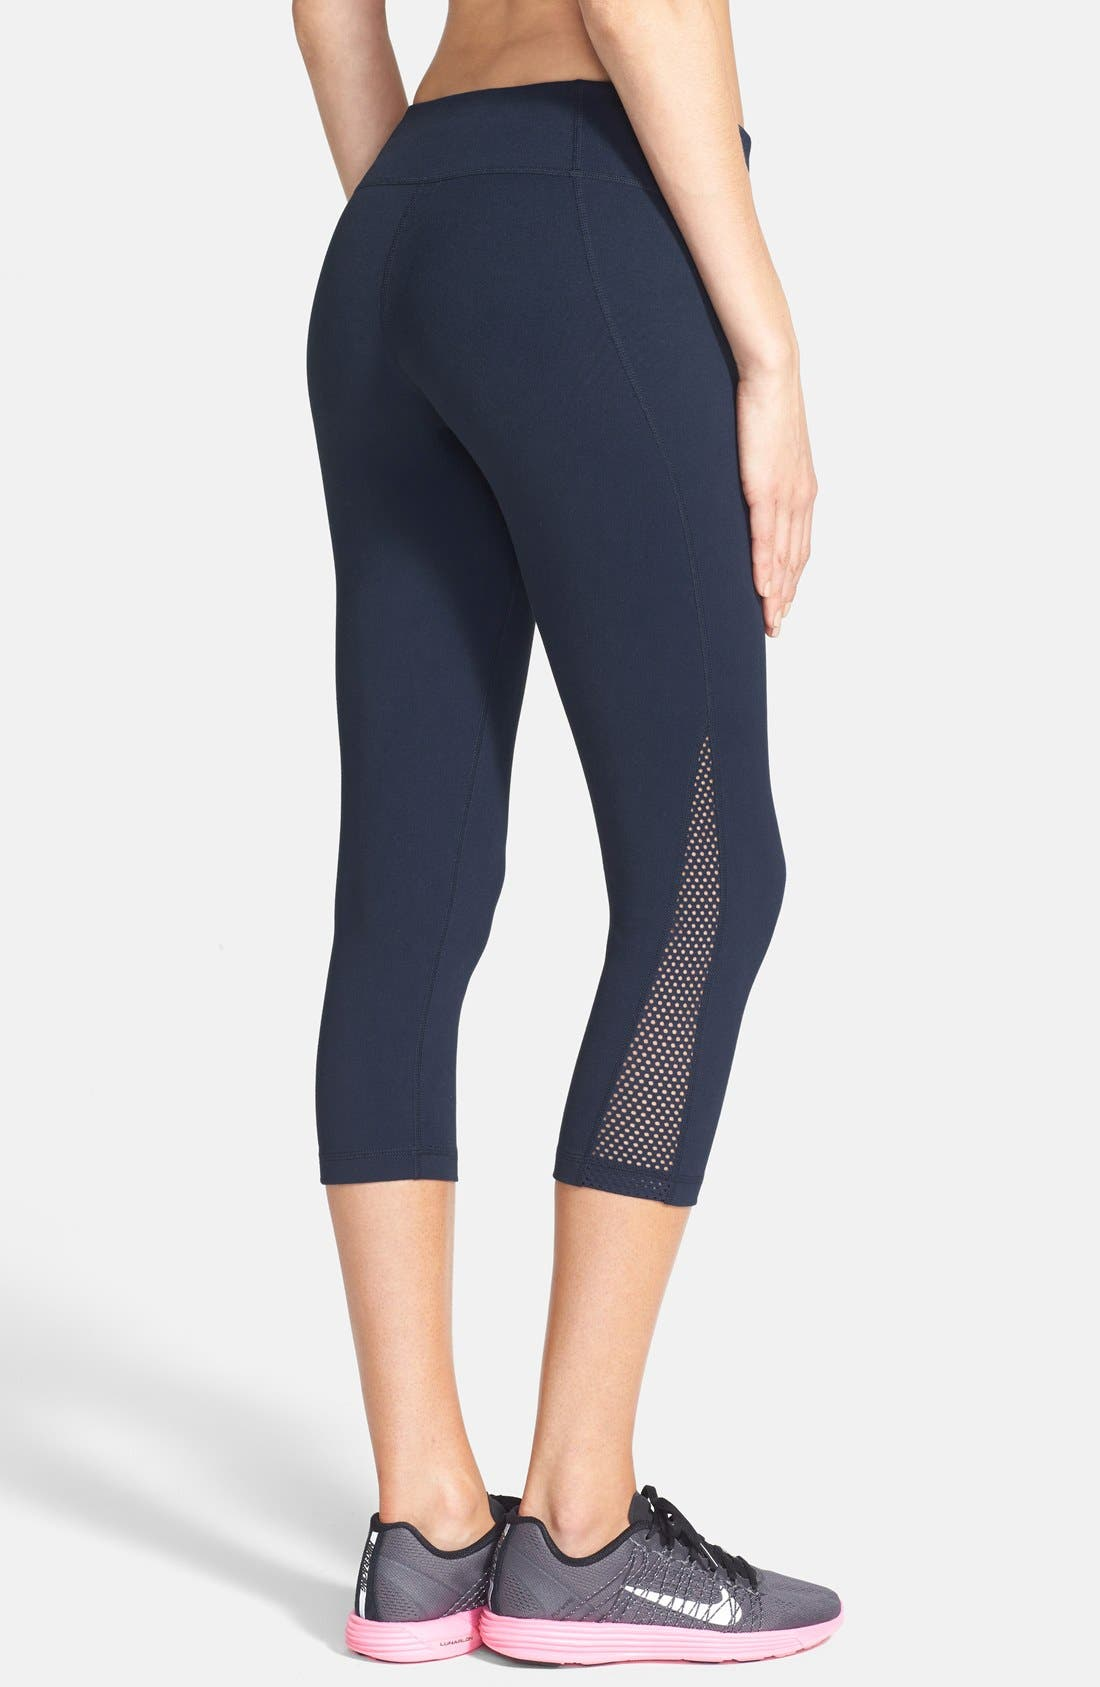 Alternate Image 2  - Zella 'Live In - Streamline' Mesh Detail Capris